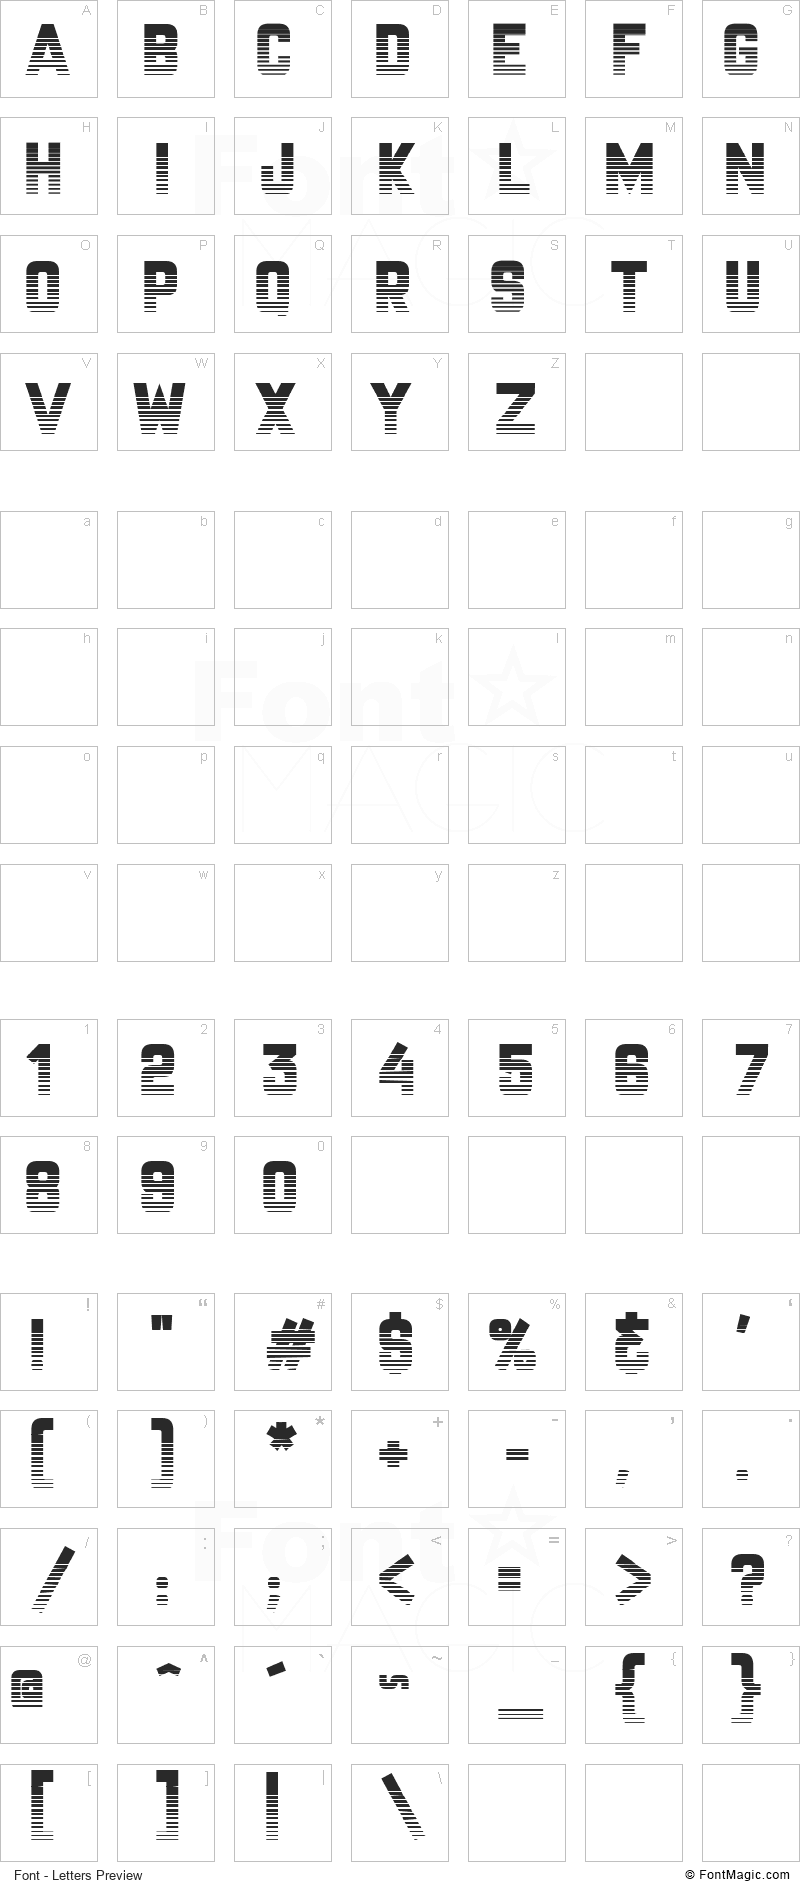 CHAMPIONSHIP Font - All Latters Preview Chart